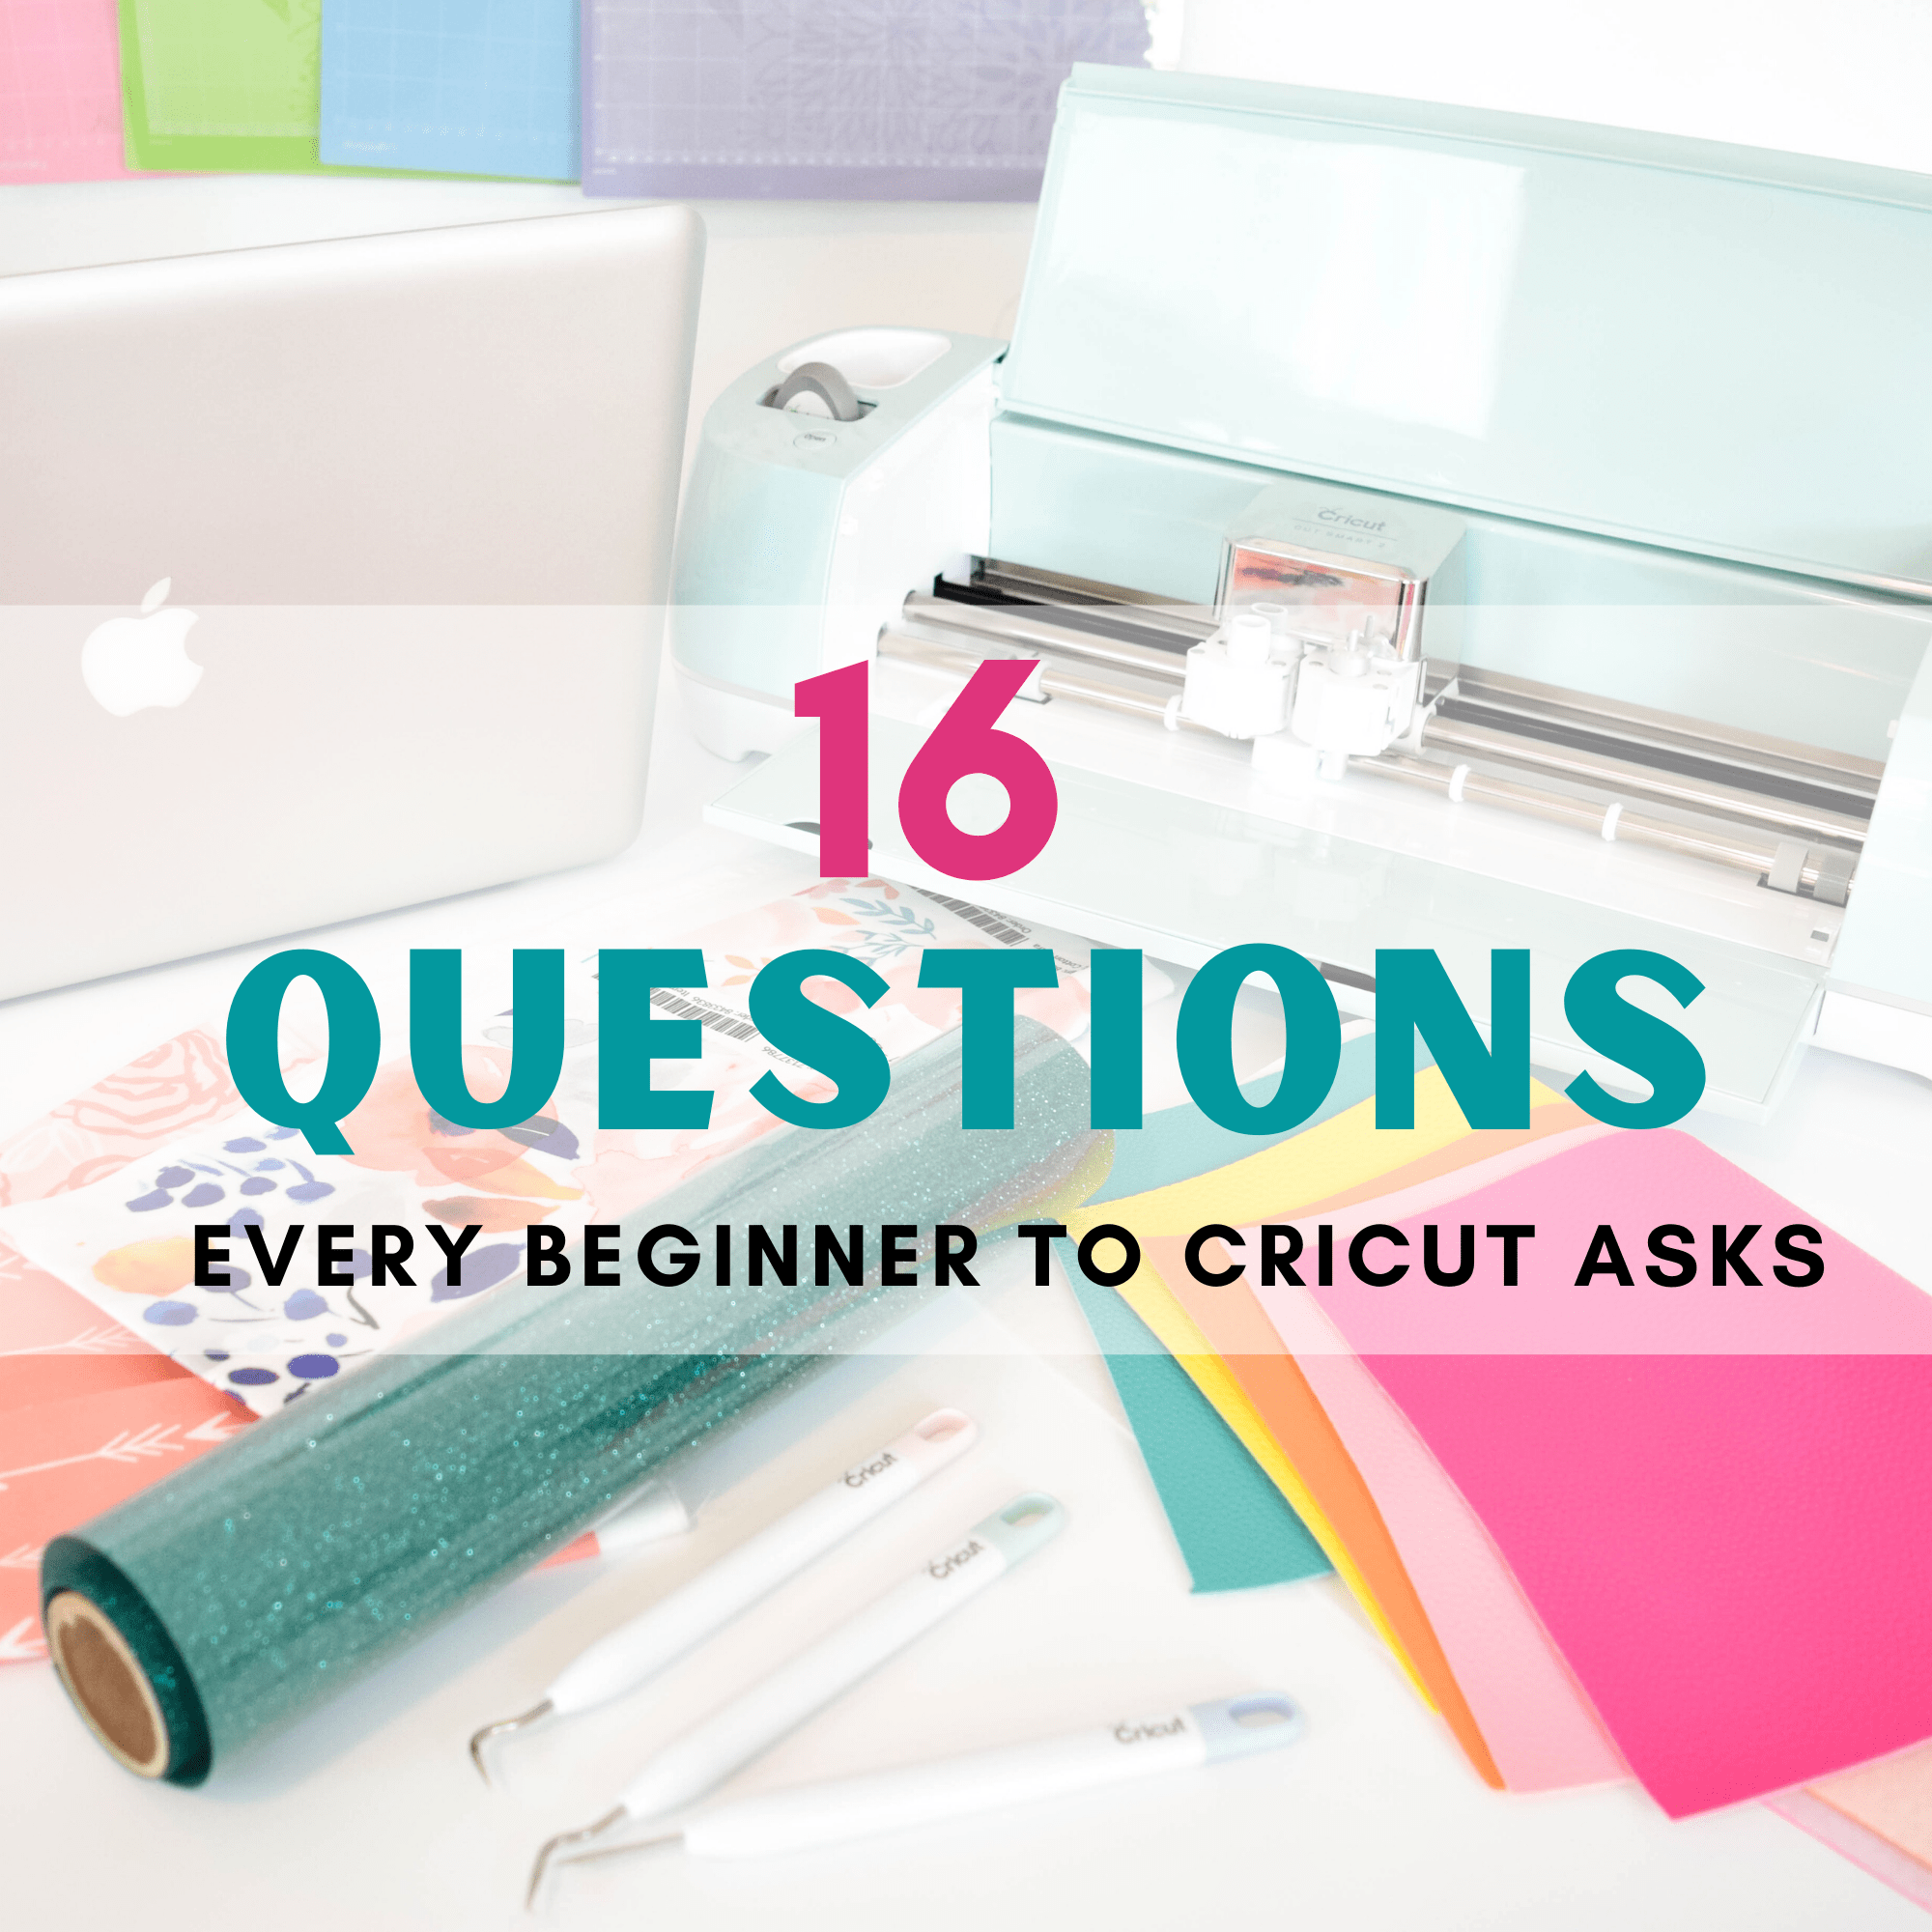 Cricut Design Space How To – 16 Questions Every Cricut Beginners Asks